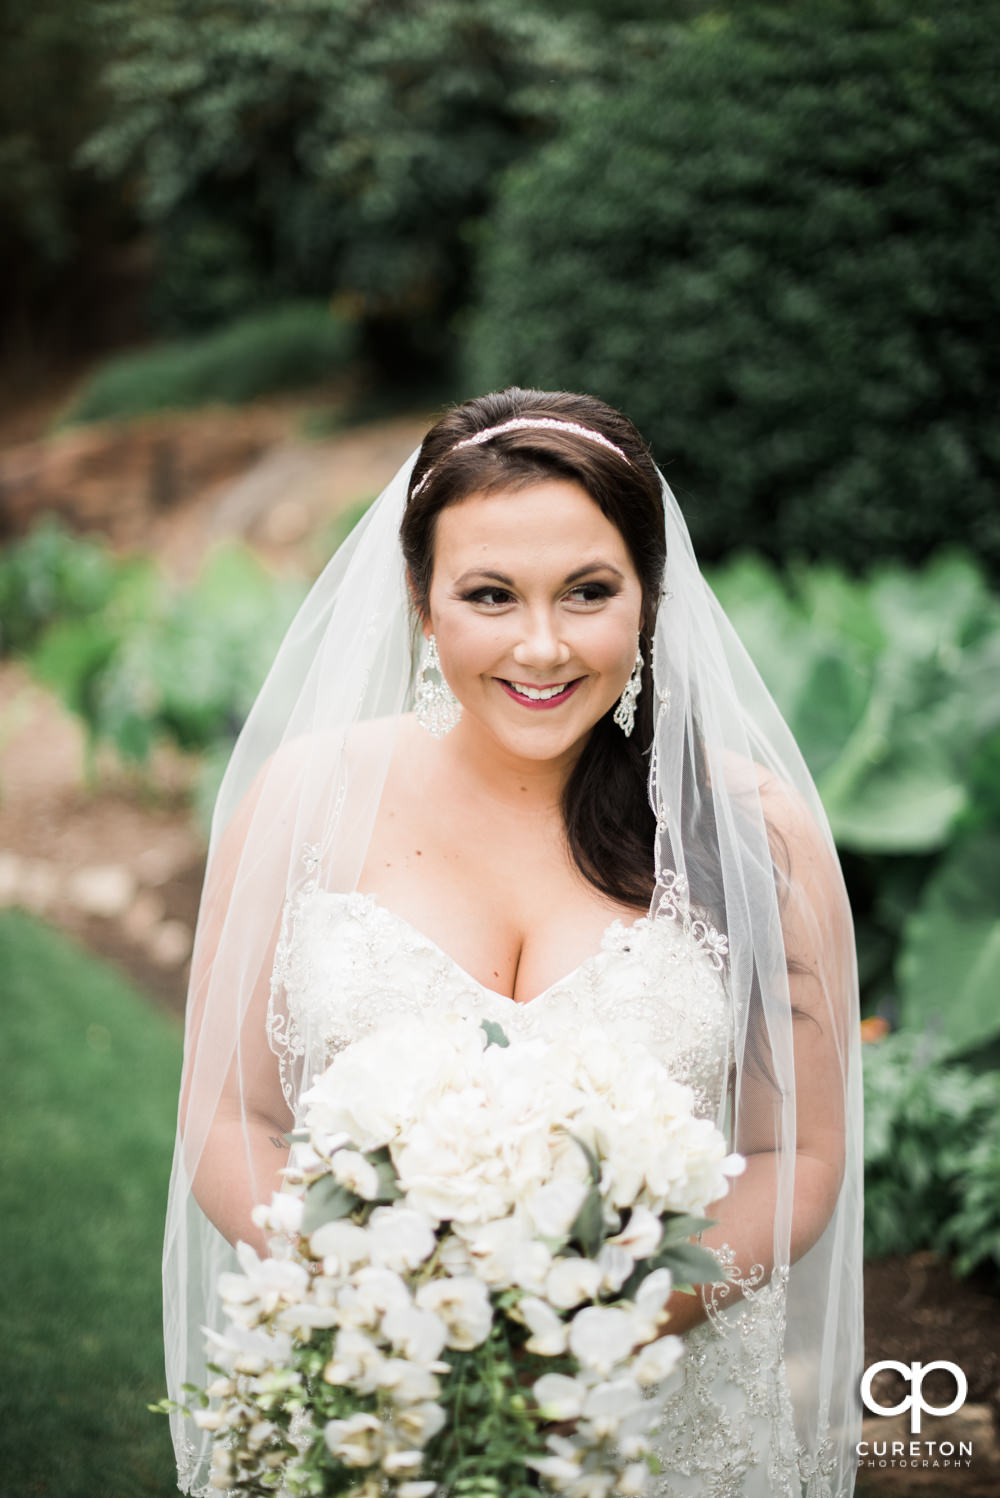 Bride laughing during her bridal session at the Greenville Rock Quarry Garden.